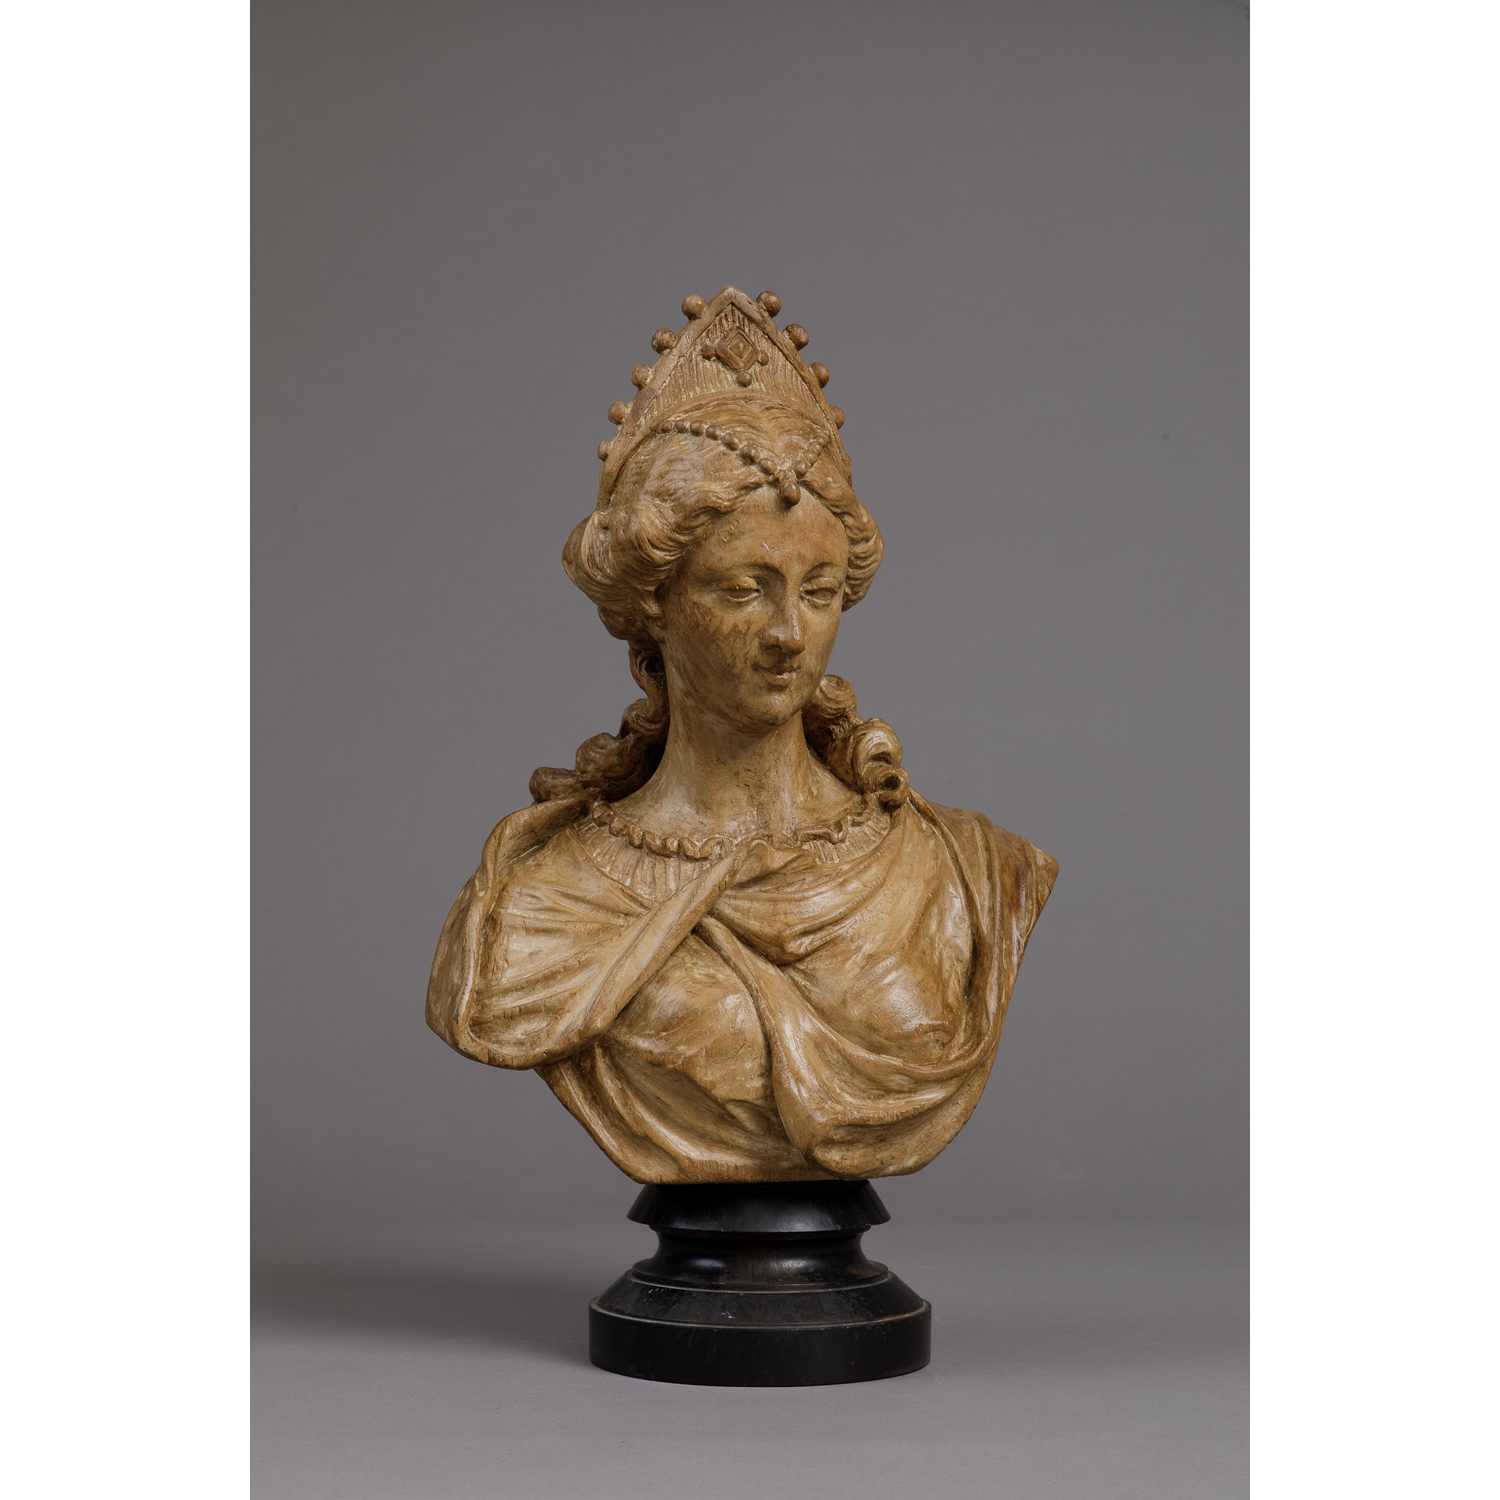 FLEMISH BAROQUE BUST OF A JEWELED LADY - SOLD